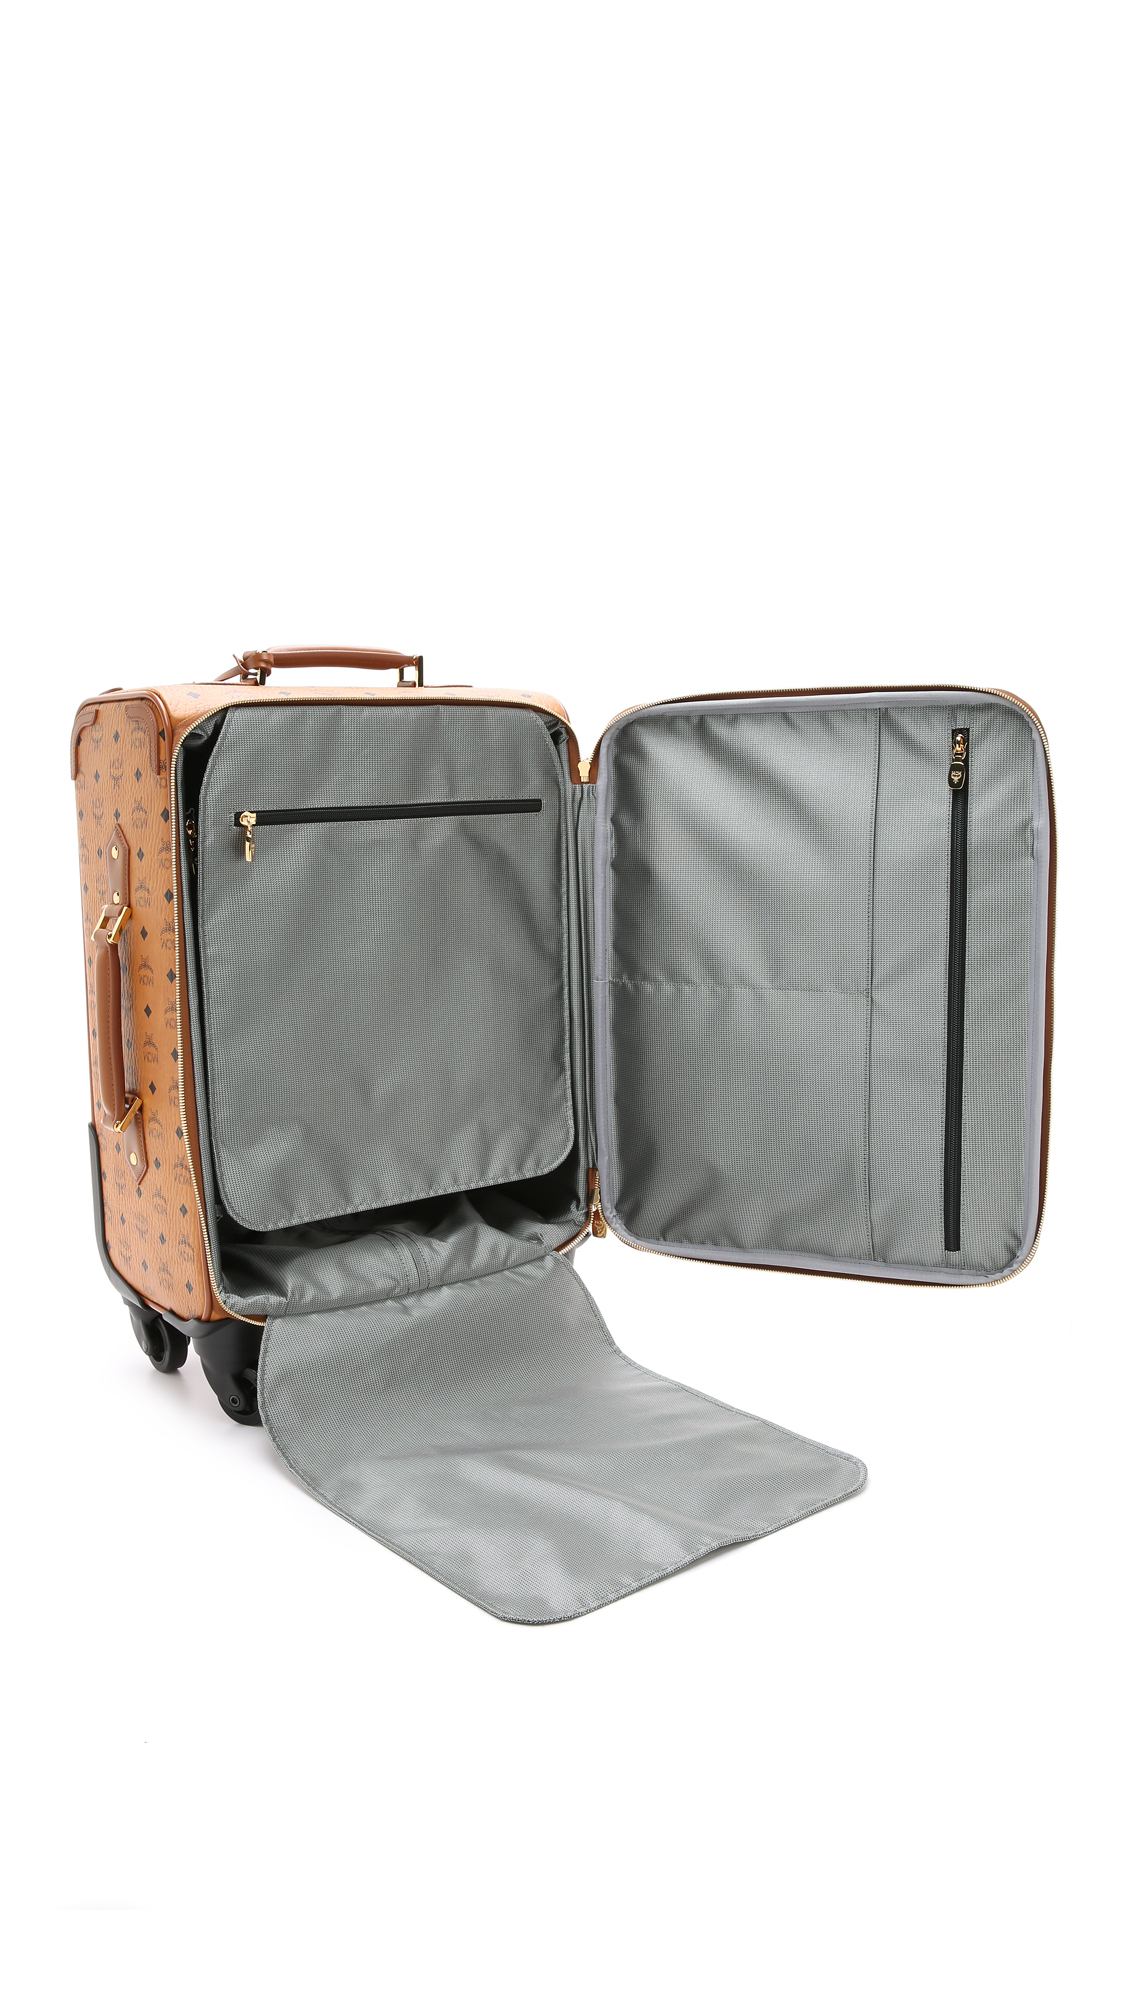 Mcm Trolly Cabin Luggage Case - Cognac in Brown | Lyst